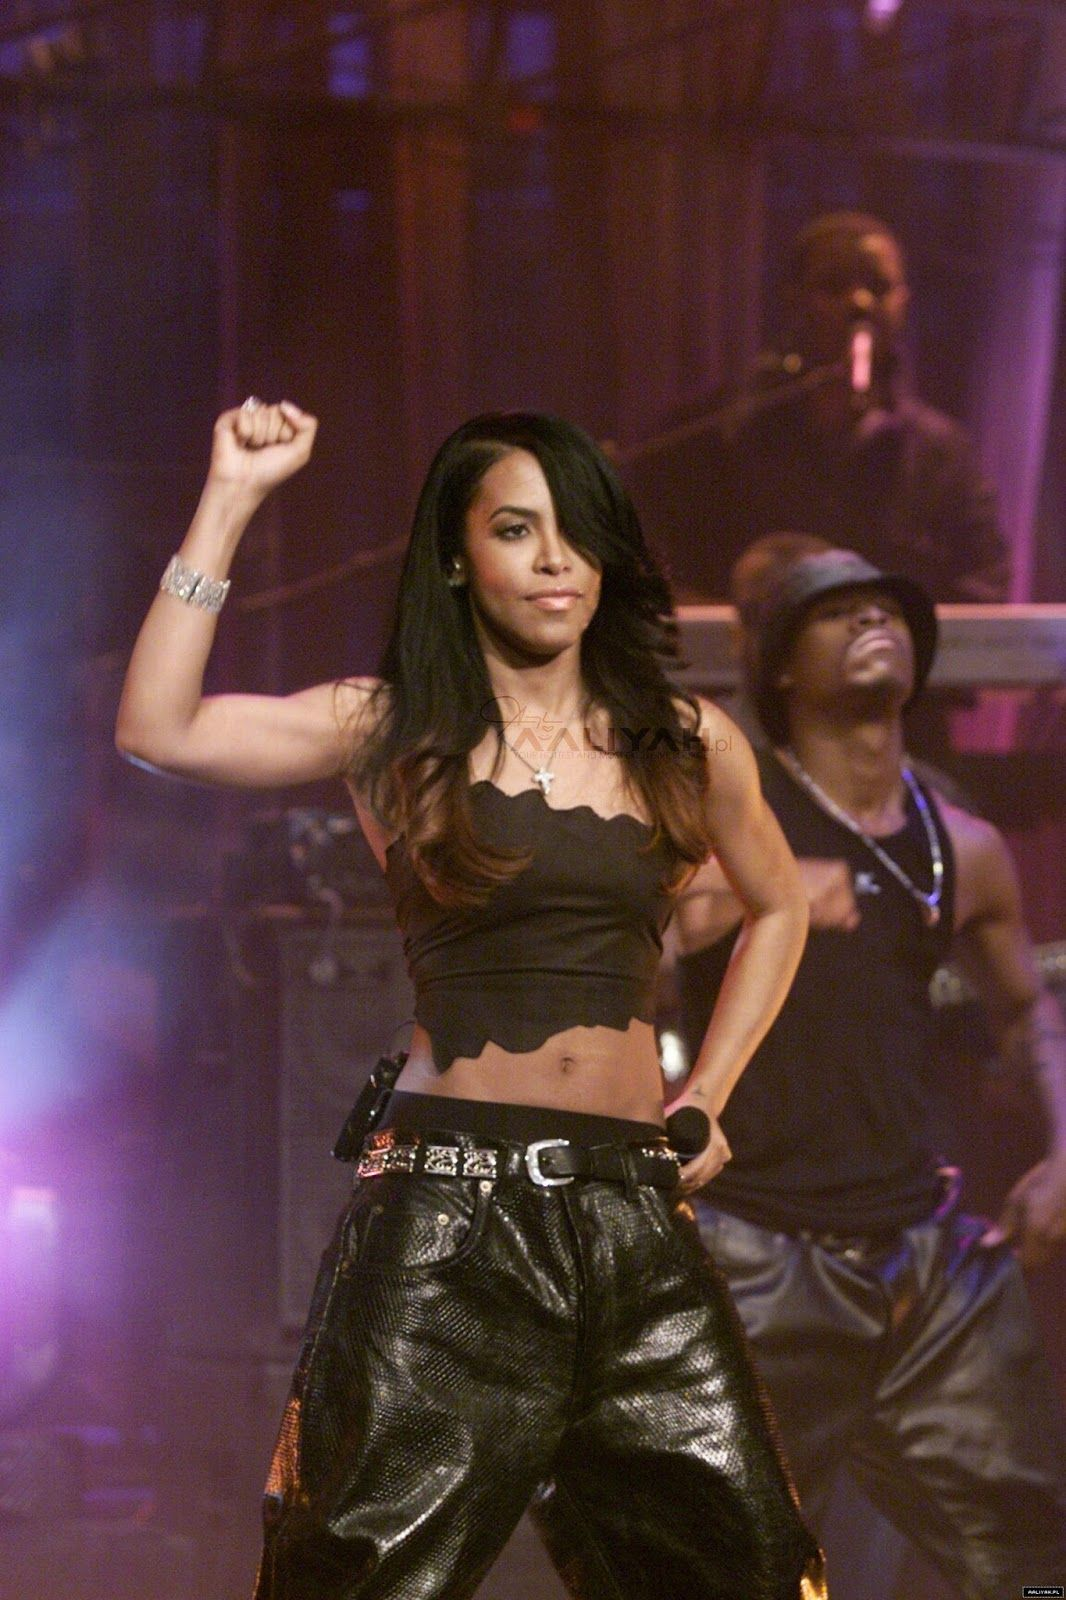 936b73a18cdd55 Aaliyah putting up that black power sign